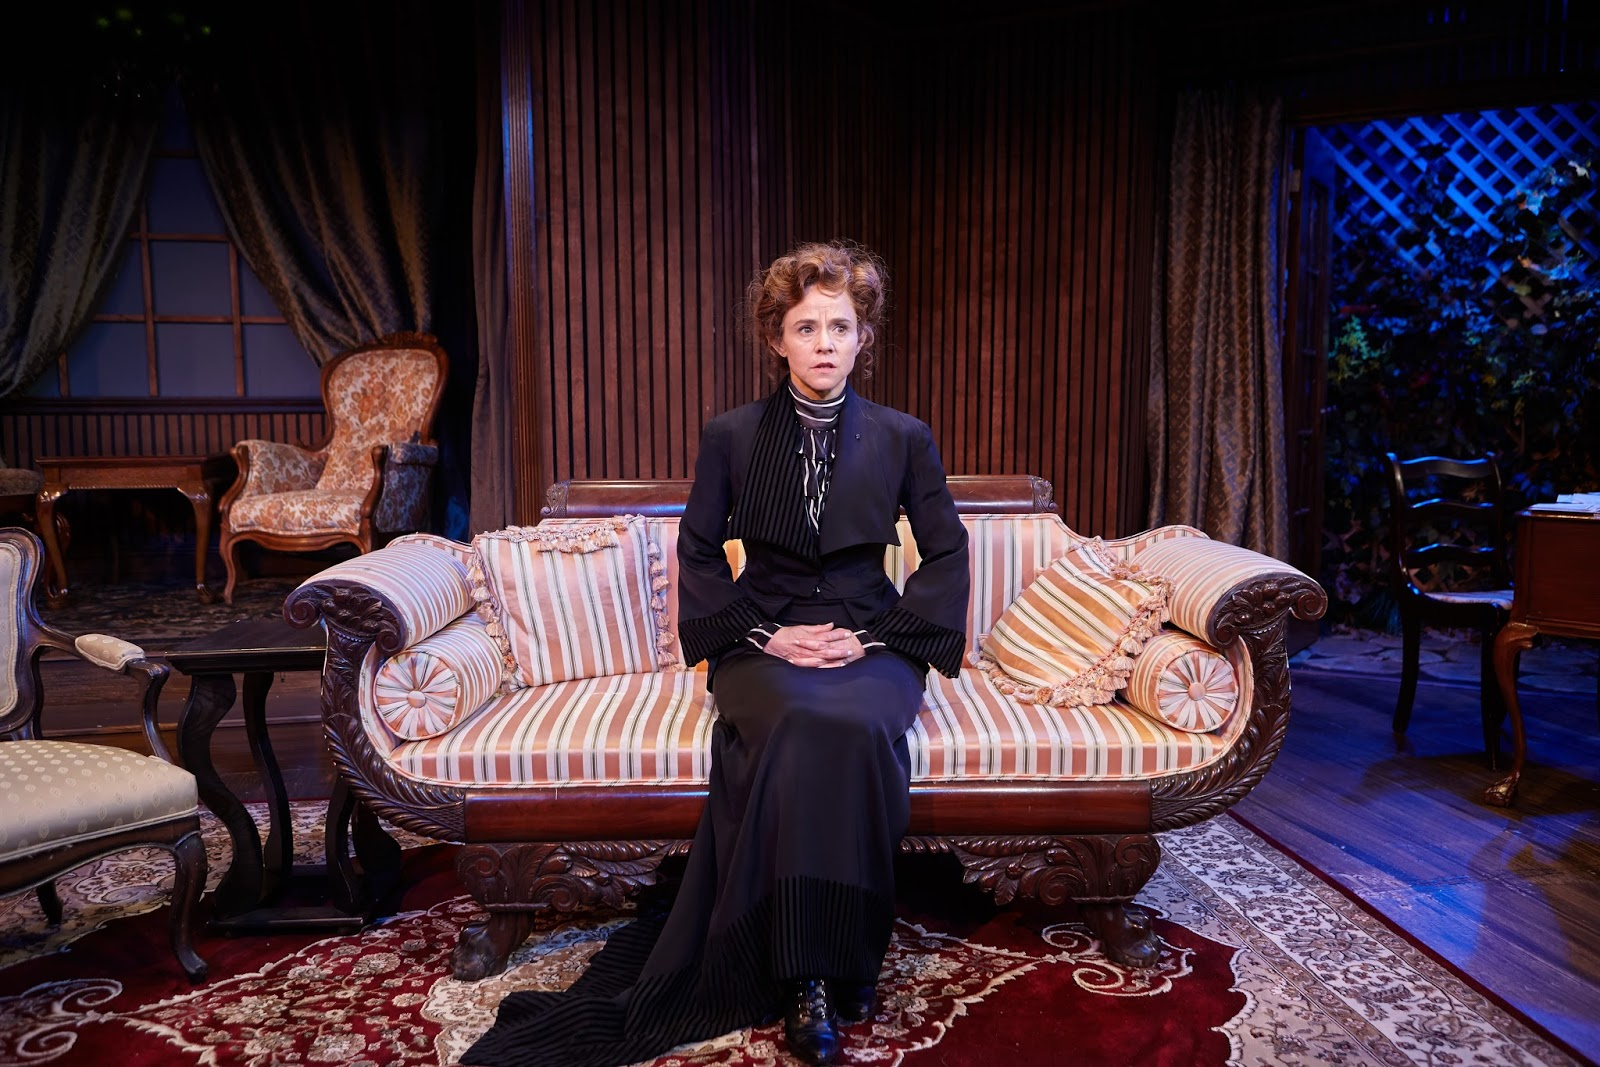 a comparison of ibsens characters hedda gabler and ghosts How does henrik ibsen's use of the huldre in hedda gabler influence the characters of the story the gender roles of women in victorian norway differ from today's standards, but, nonetheless, are still somewhat upheld.